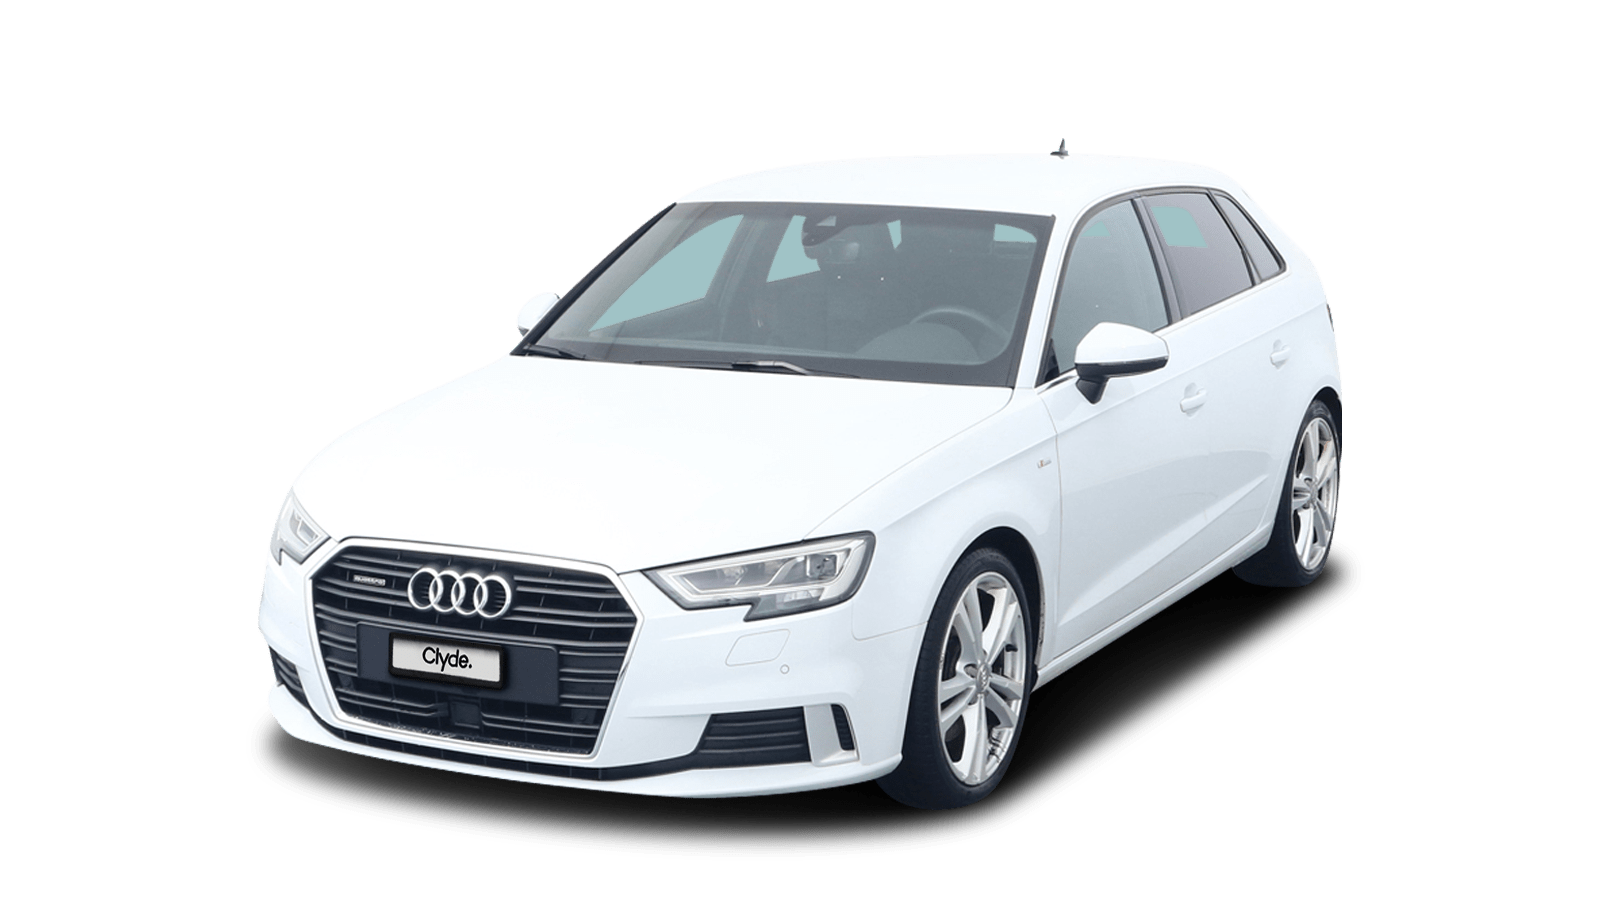 Audi A3 Sportback White front - Clyde car subscription